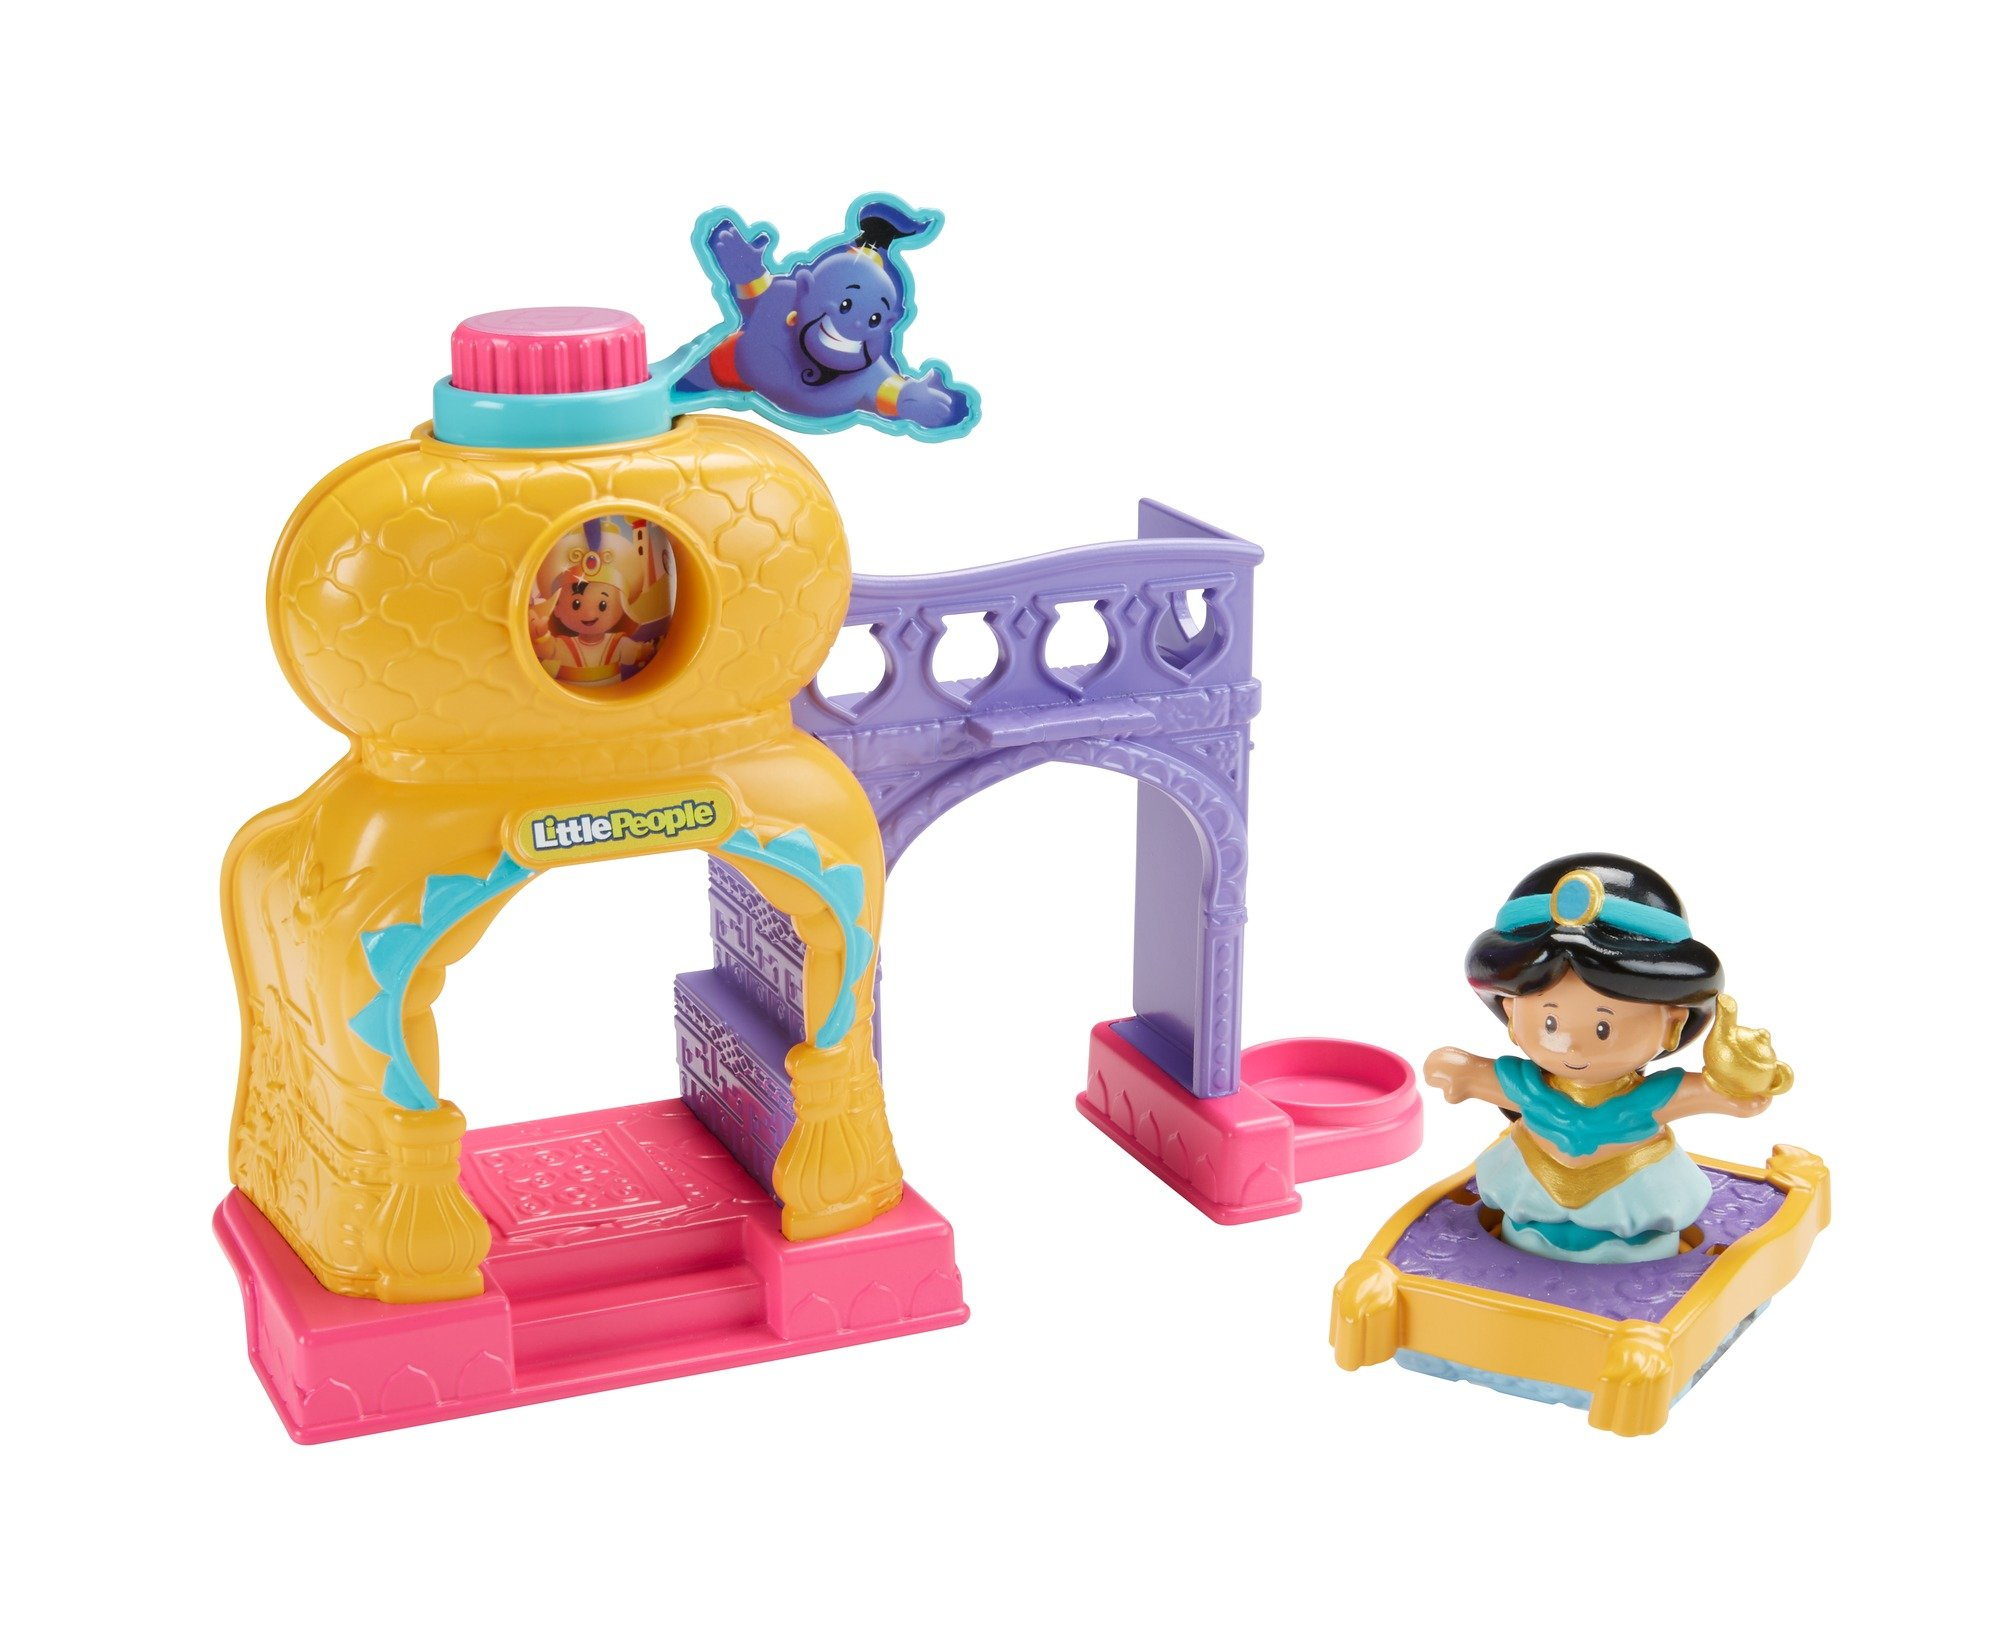 Fisher-Price Disney Princess Jasmine's Friendship Palace by Little People